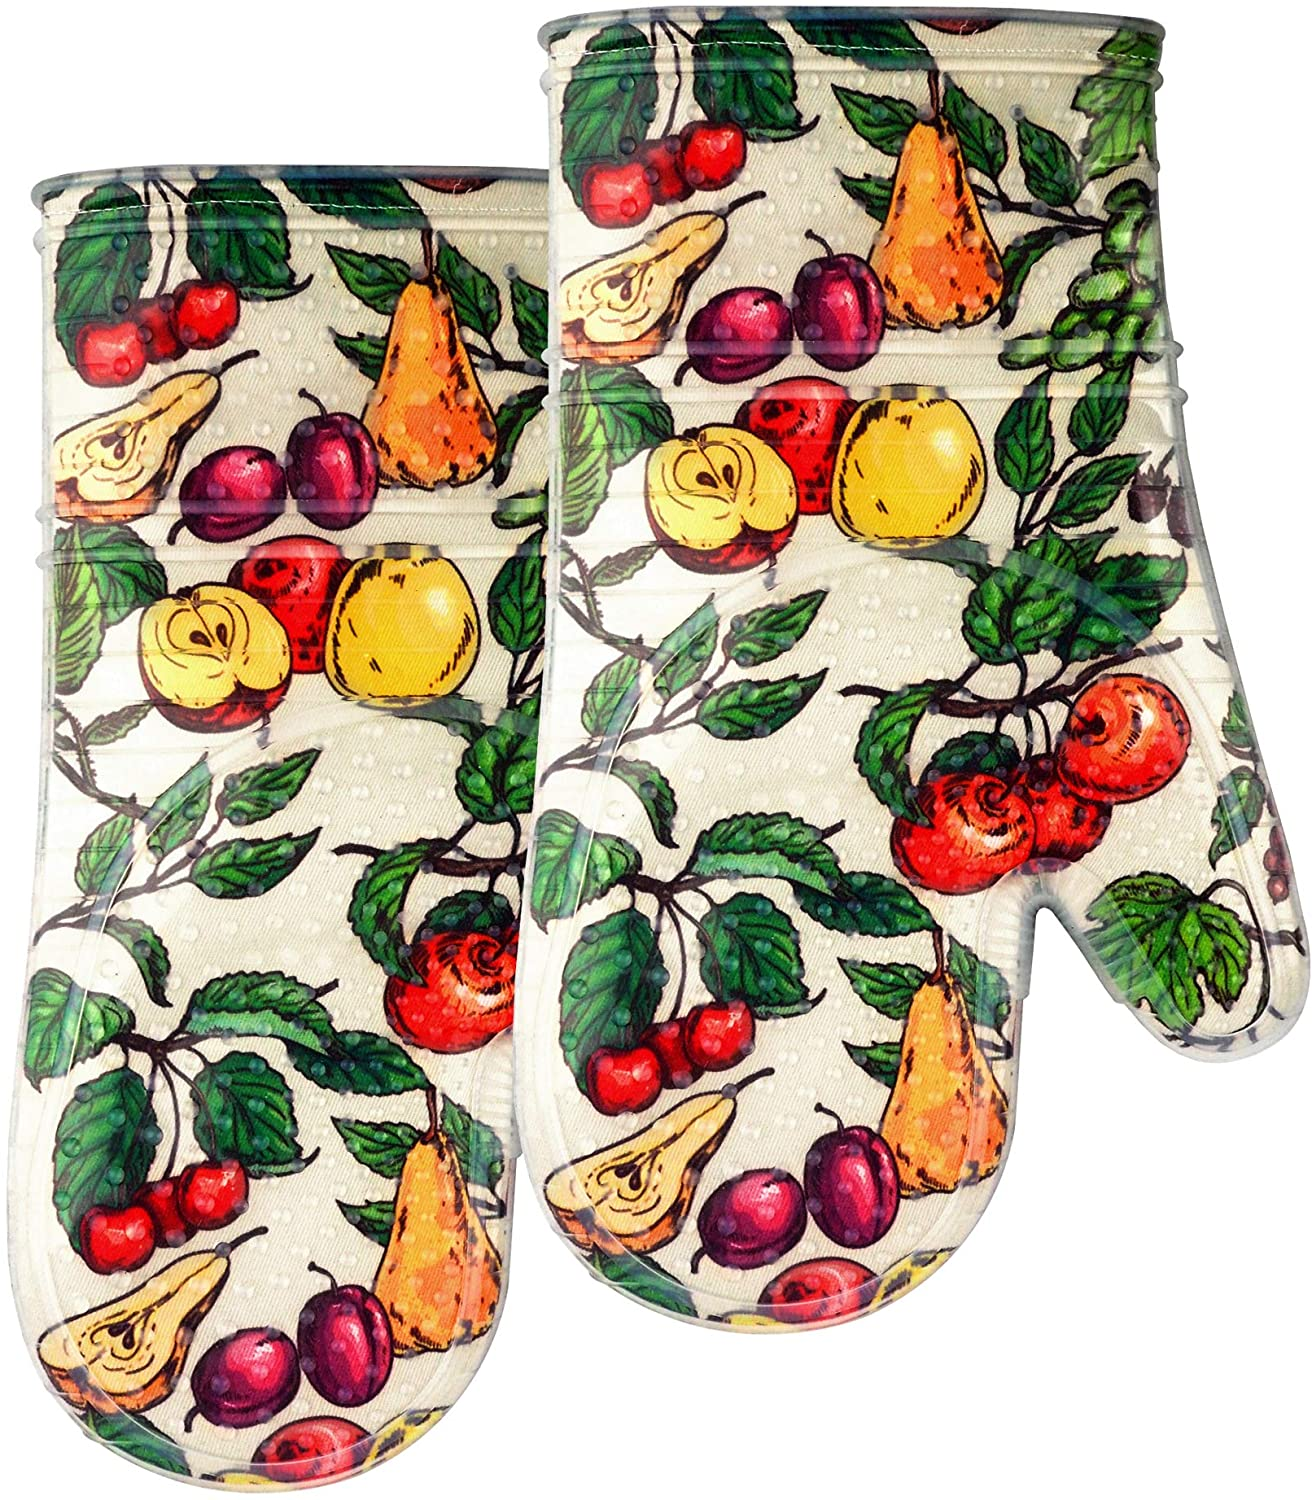 Oven Mitts set of 2 with Transparent clear Silicone shell and nice Fruit flower cotton lining, Heat Resistant to 500 F kitchen Oven Gloves pot holder for cooking (Fruit flower, Oven Mitts)